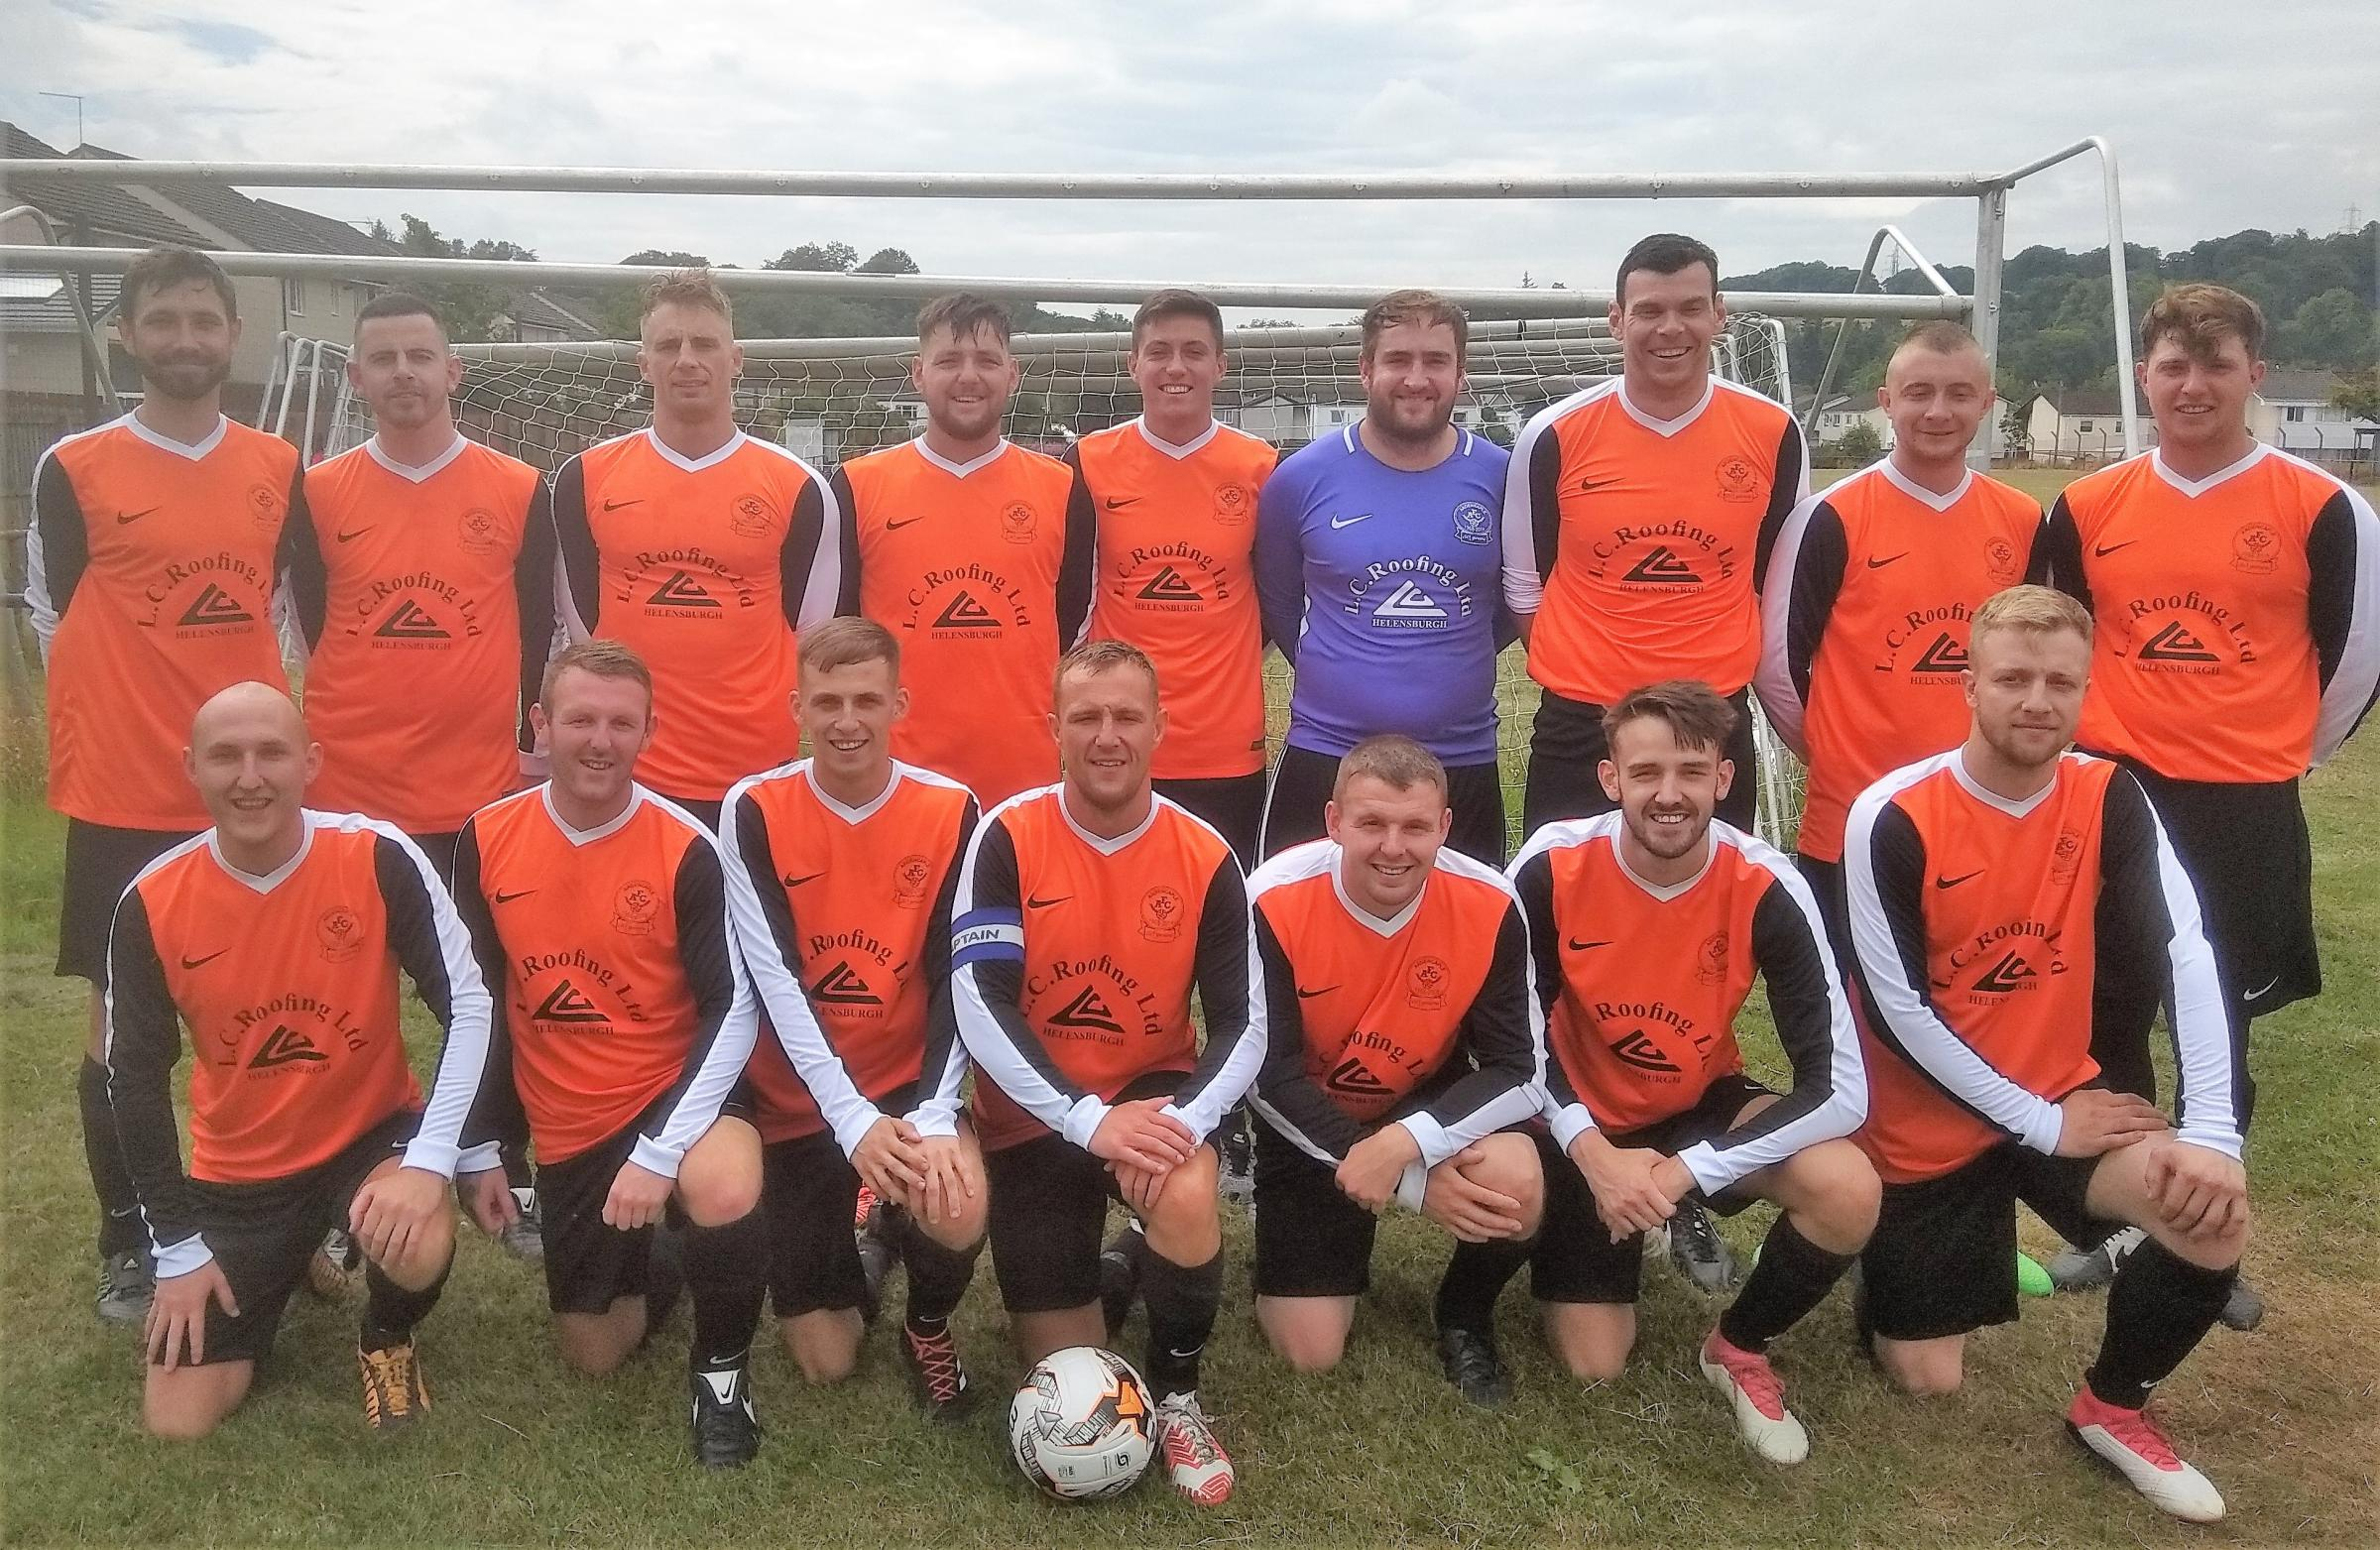 Ardencaple FC's new adult side line up for their first ever fixture - a 1-0 pre-season friendly win against Viewfield Rovers in Lochwinnoch on Saturday